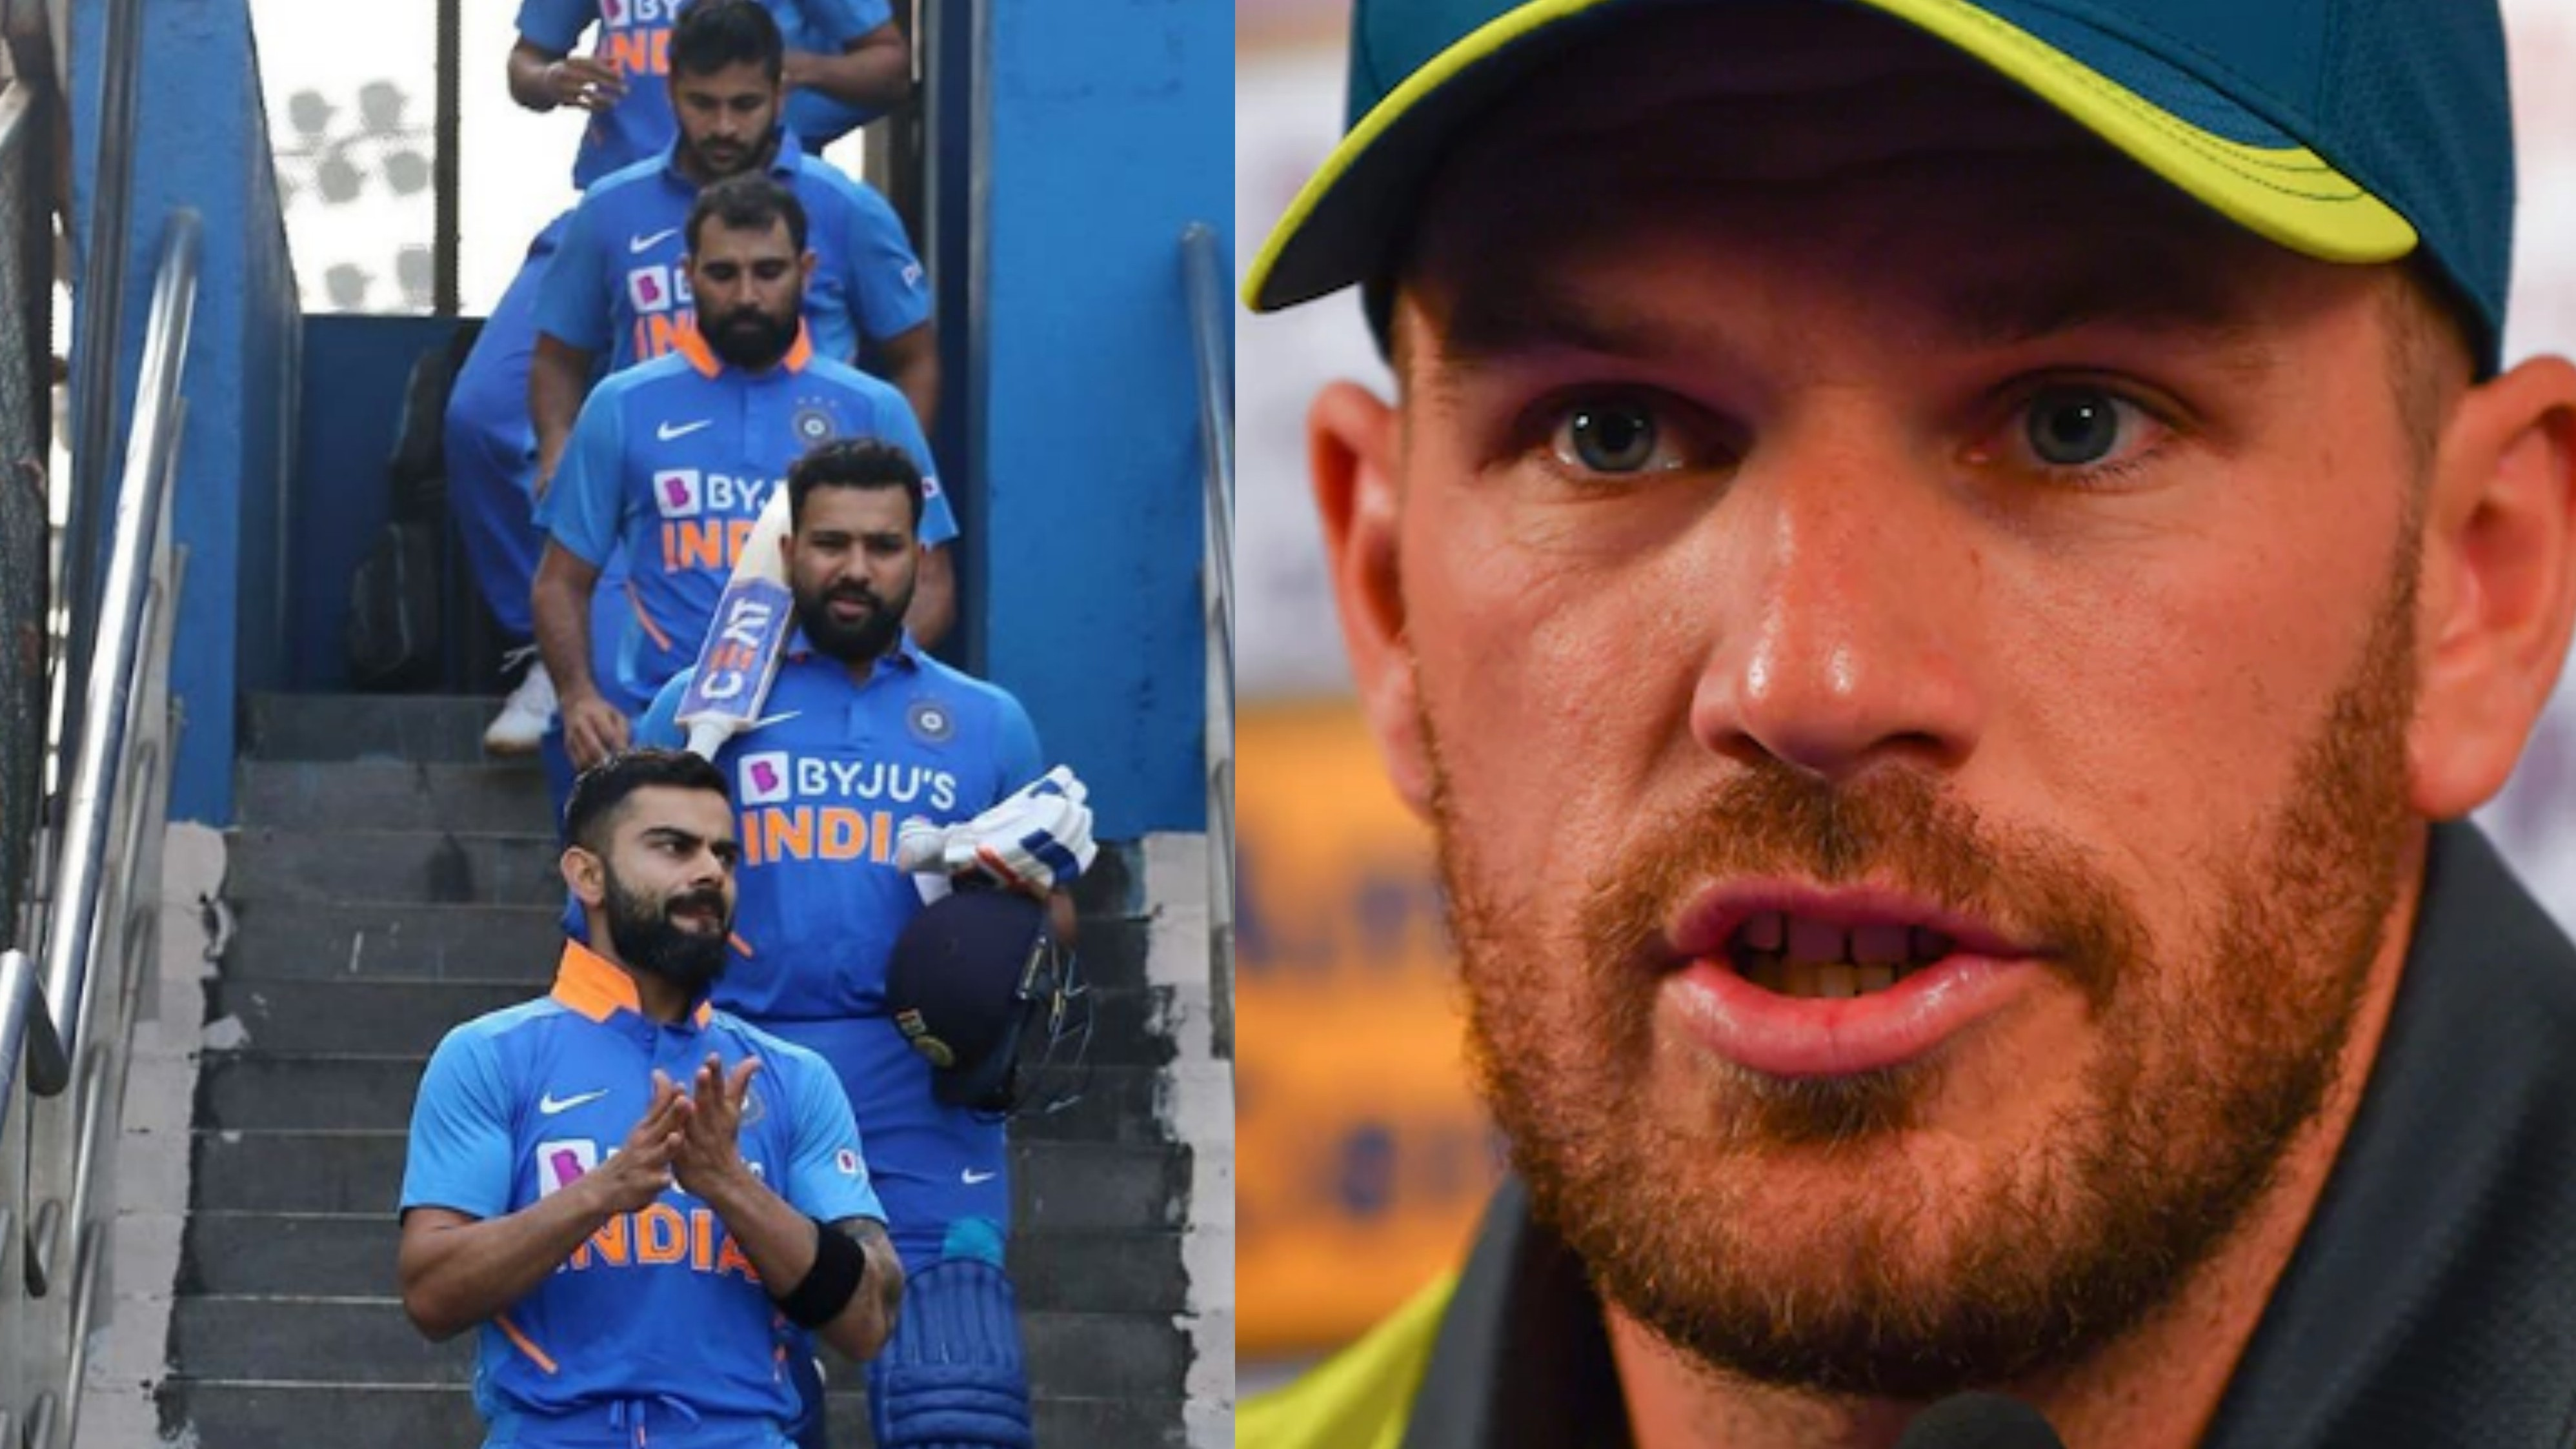 IND v AUS 2020: Team India will fight back hard in the Rajkot ODI, expects Aaron Finch